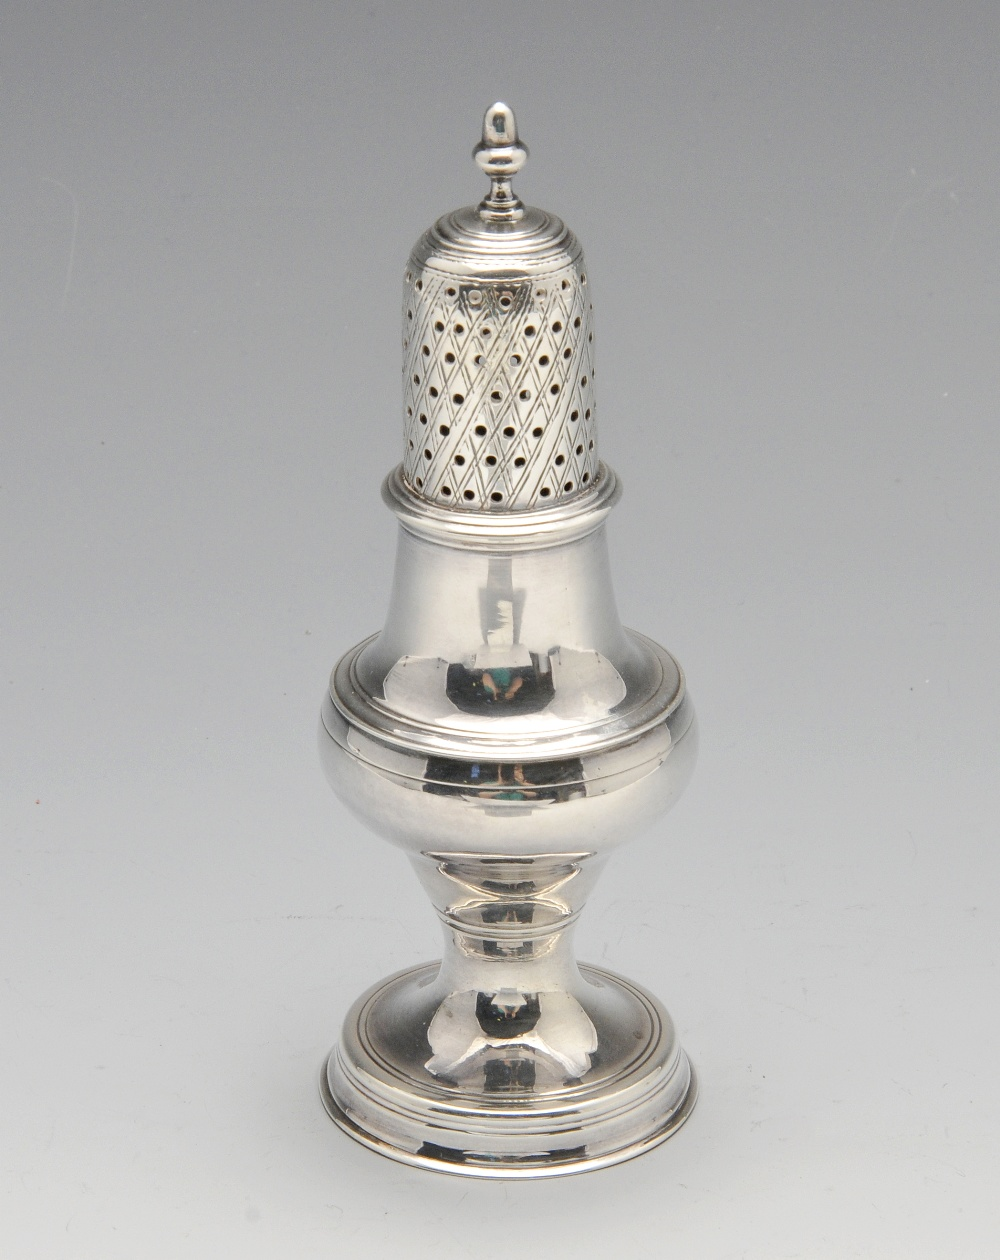 Lot 6 - A George III silver caster of baluster form with diaper pierced cover. Hallmarked Hester Bateman,